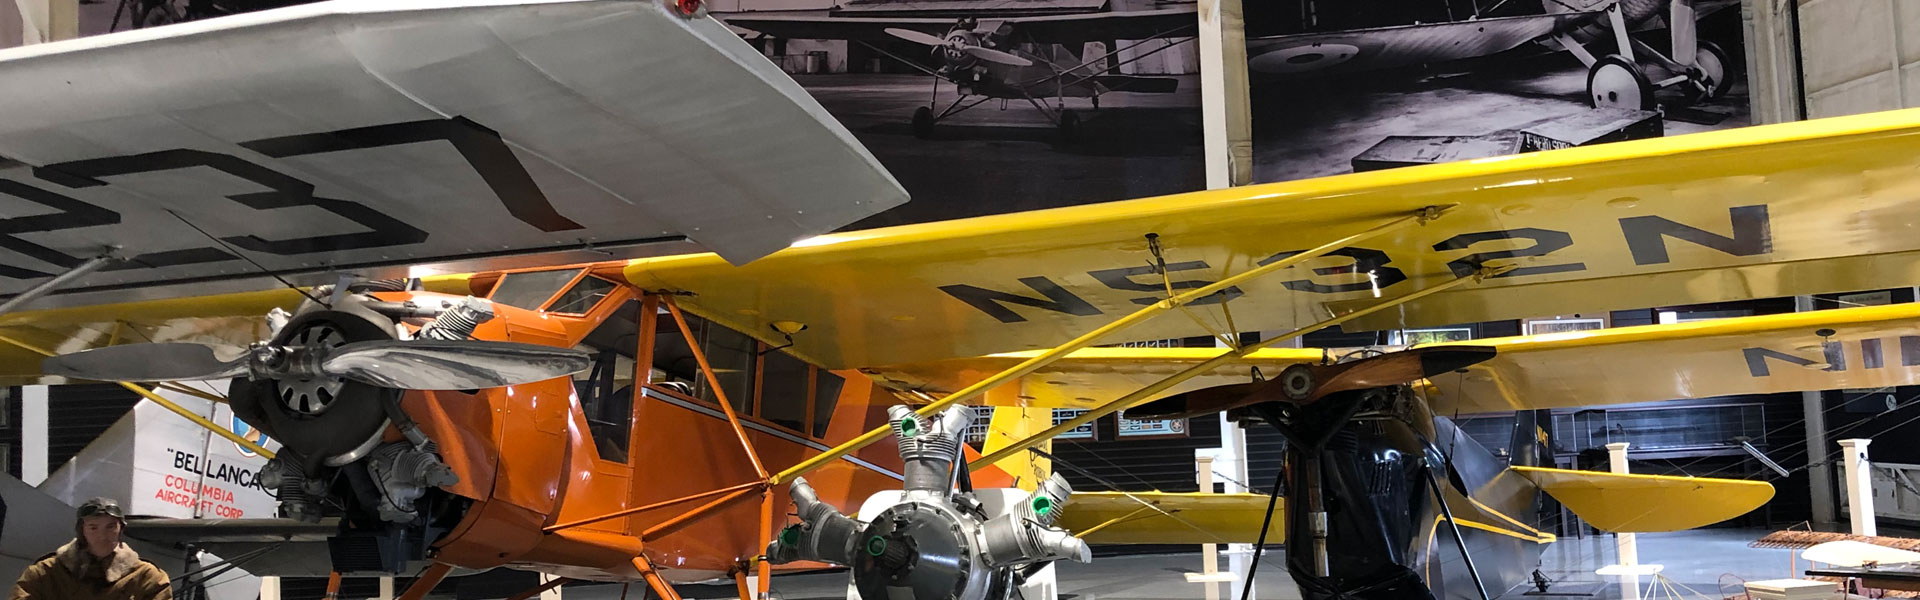 Virginia Aeronautical Historical Society Aviation Hall of Fame at the Shannon Air Museum